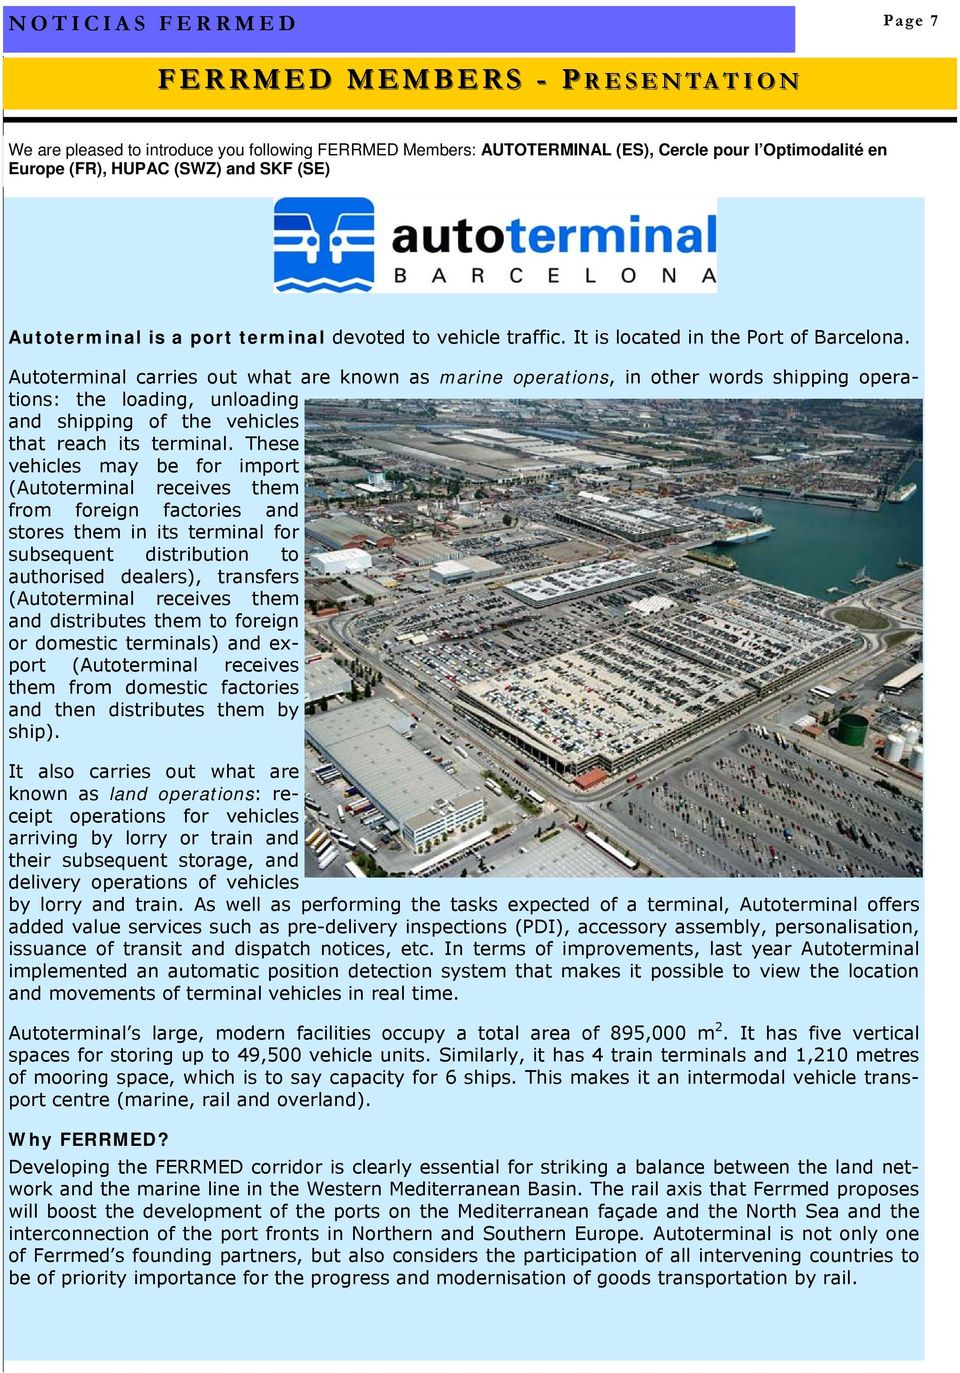 Autoterminal carries out what are known as marine operations, in other words shipping operations: the loading, unloading and shipping of the vehicles that reach its terminal.